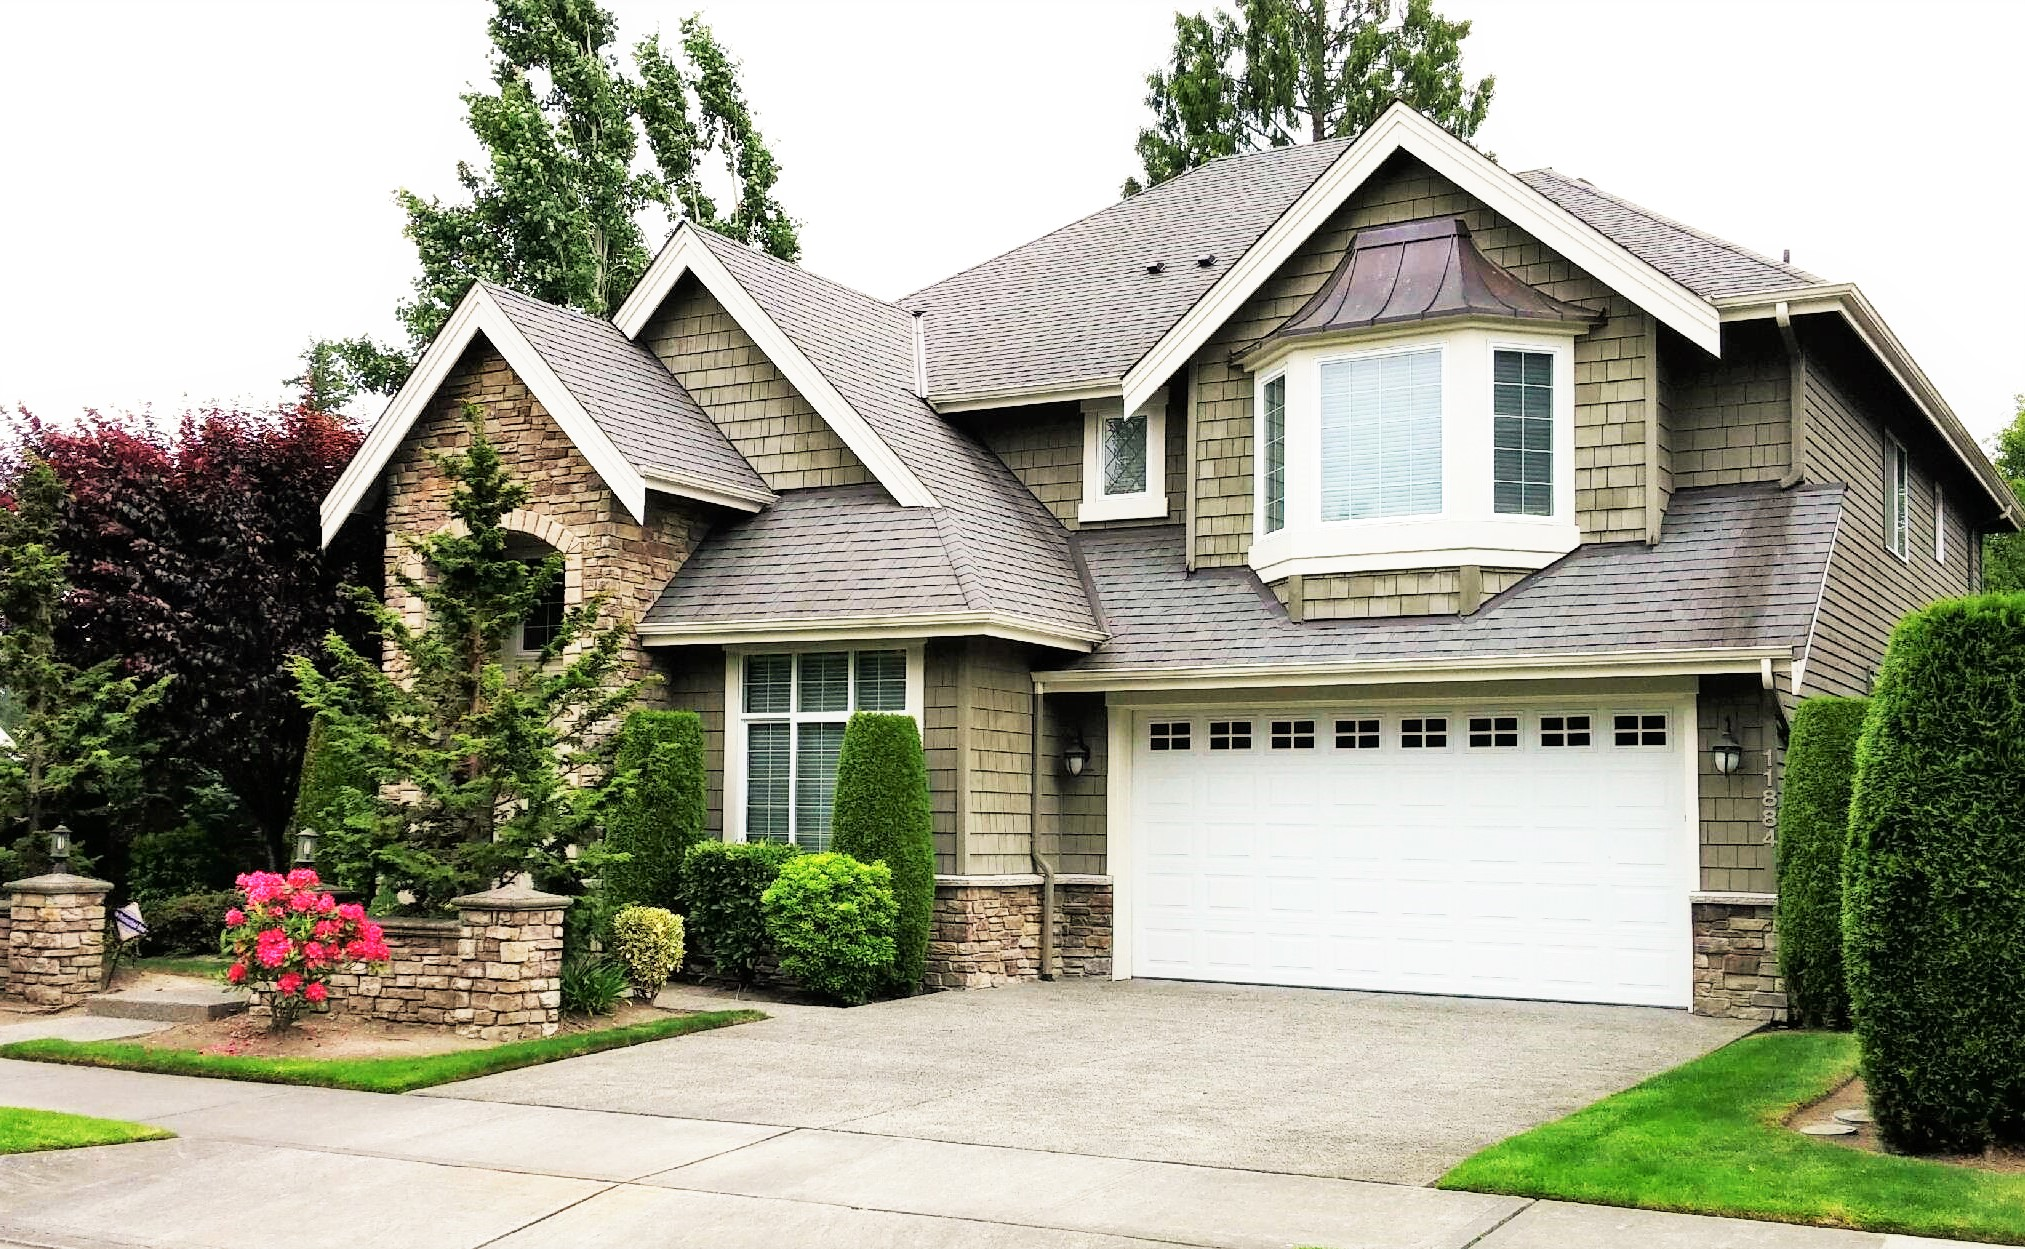 8 Ways to Protect Your Home While on Vacation - Neighborhood